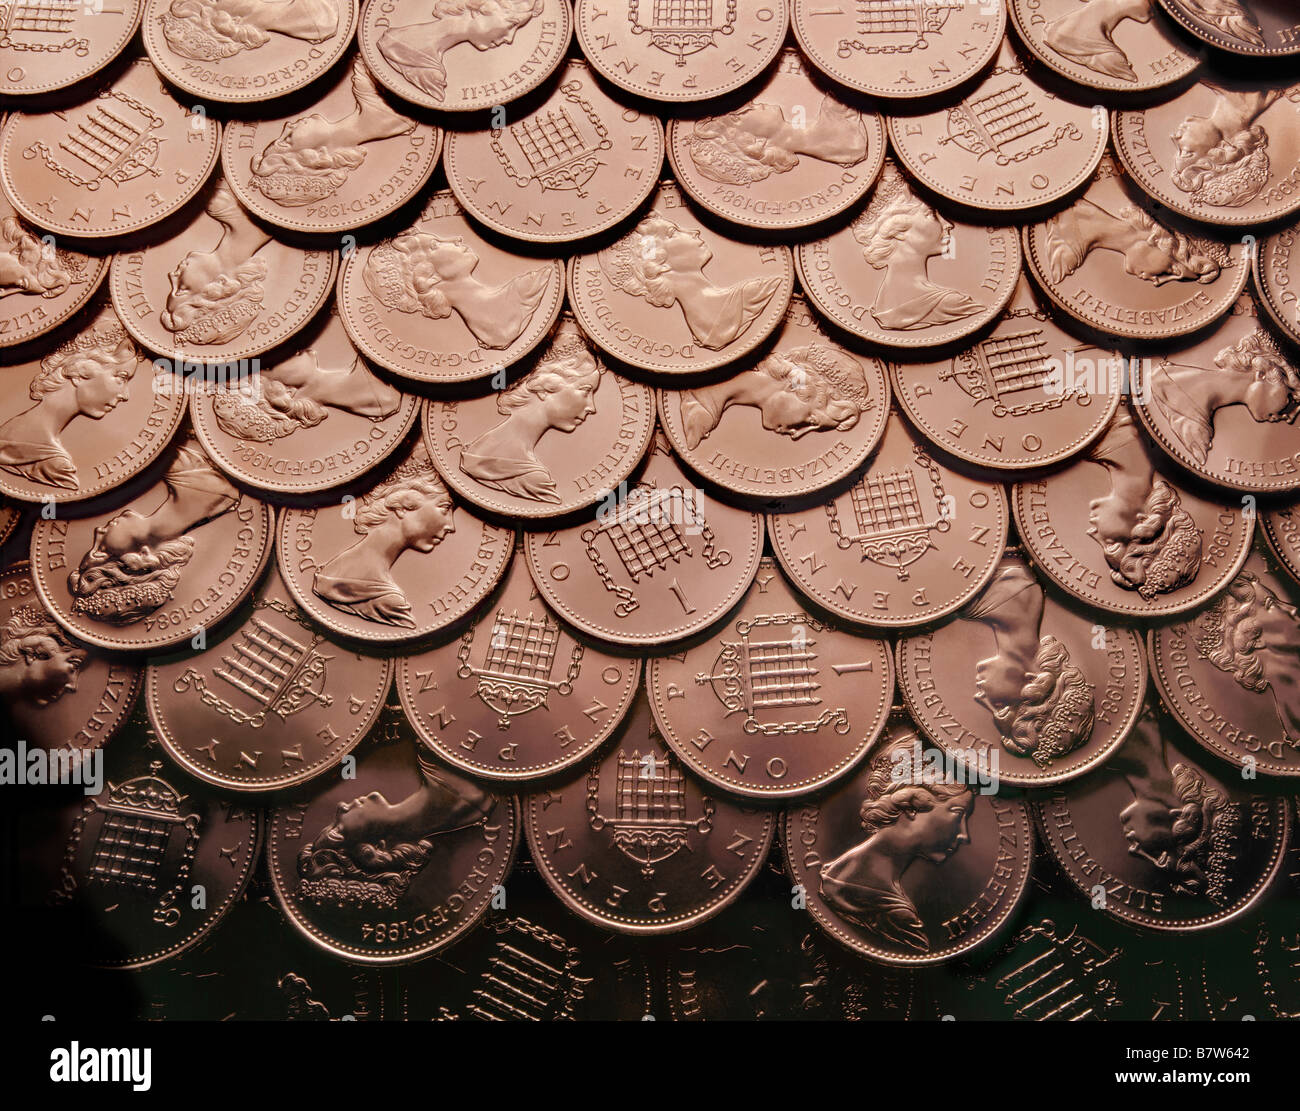 British Sterling Pennies, Penny coins. - Stock Image